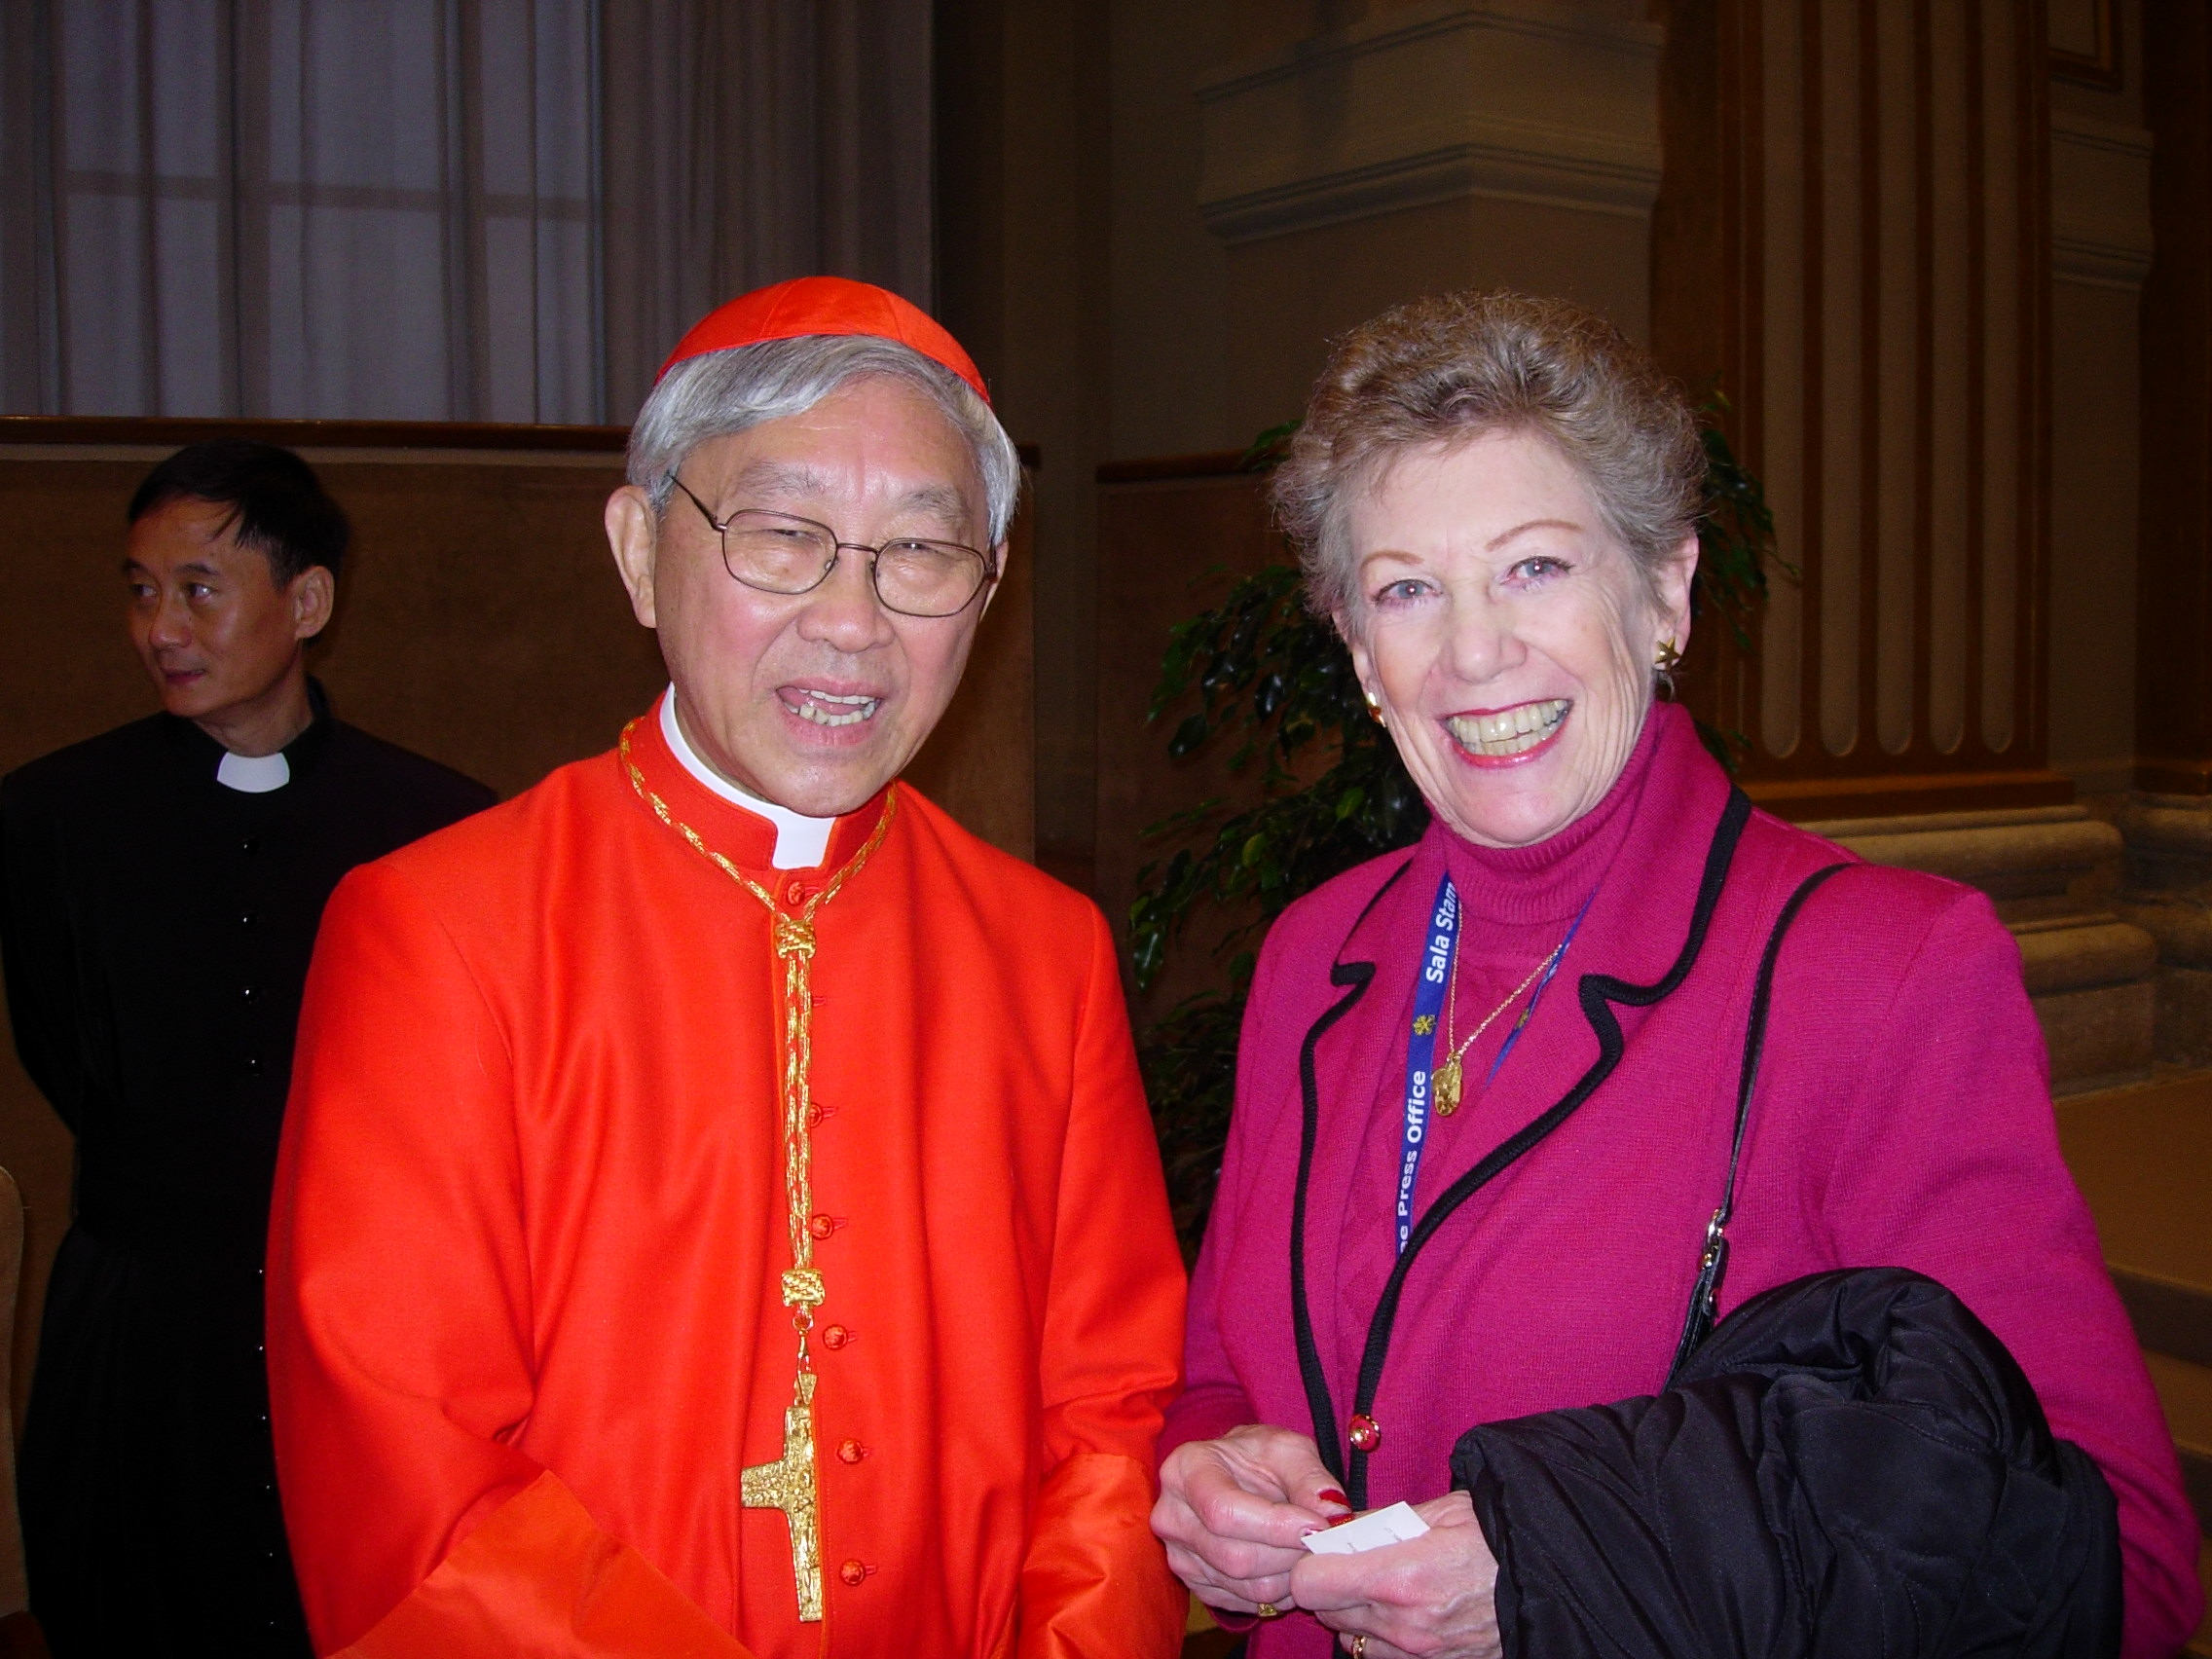 IS THE VATICAN SELLING OUT THE CATHOLIC CHURCH IN CHINA? A CARDINAL